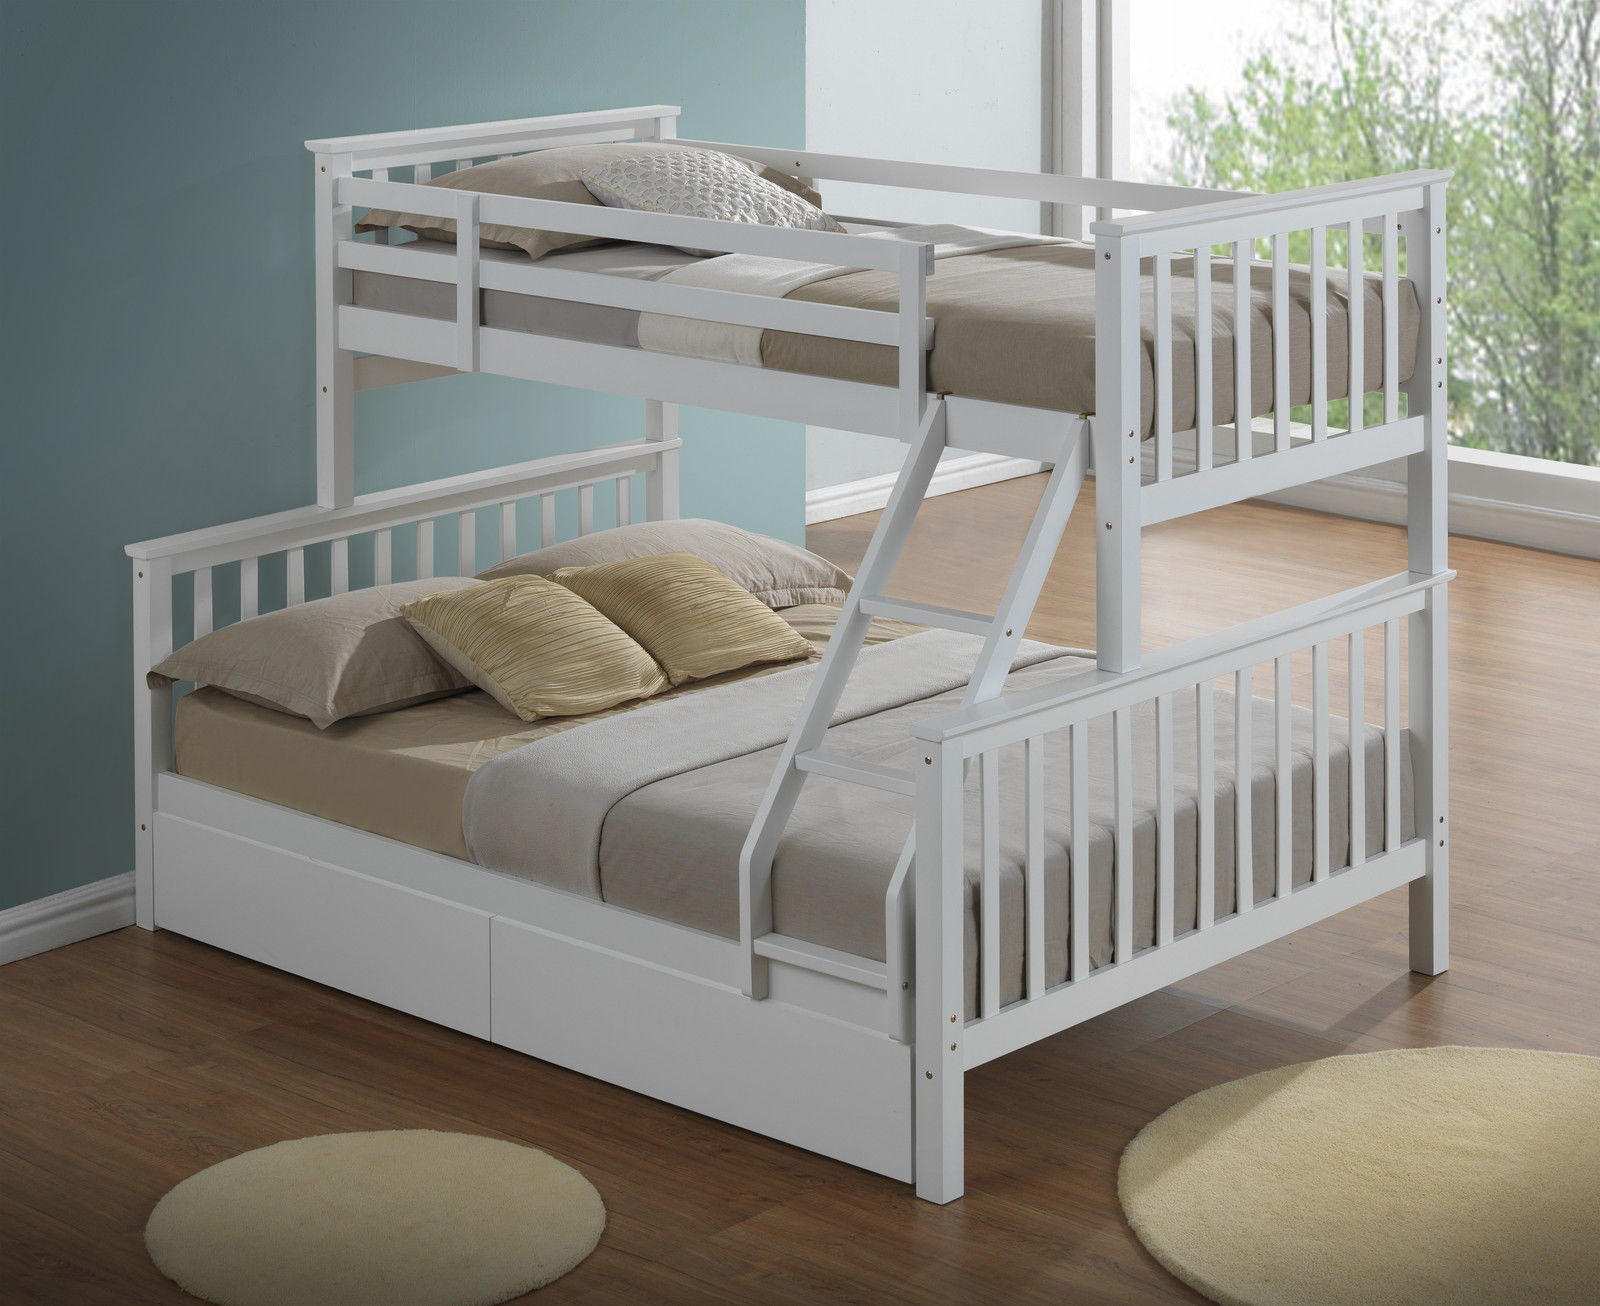 Kids Modern Bunk Bed Modern 3 Sleeper White Childrens Bunk Bed Inc Drawers